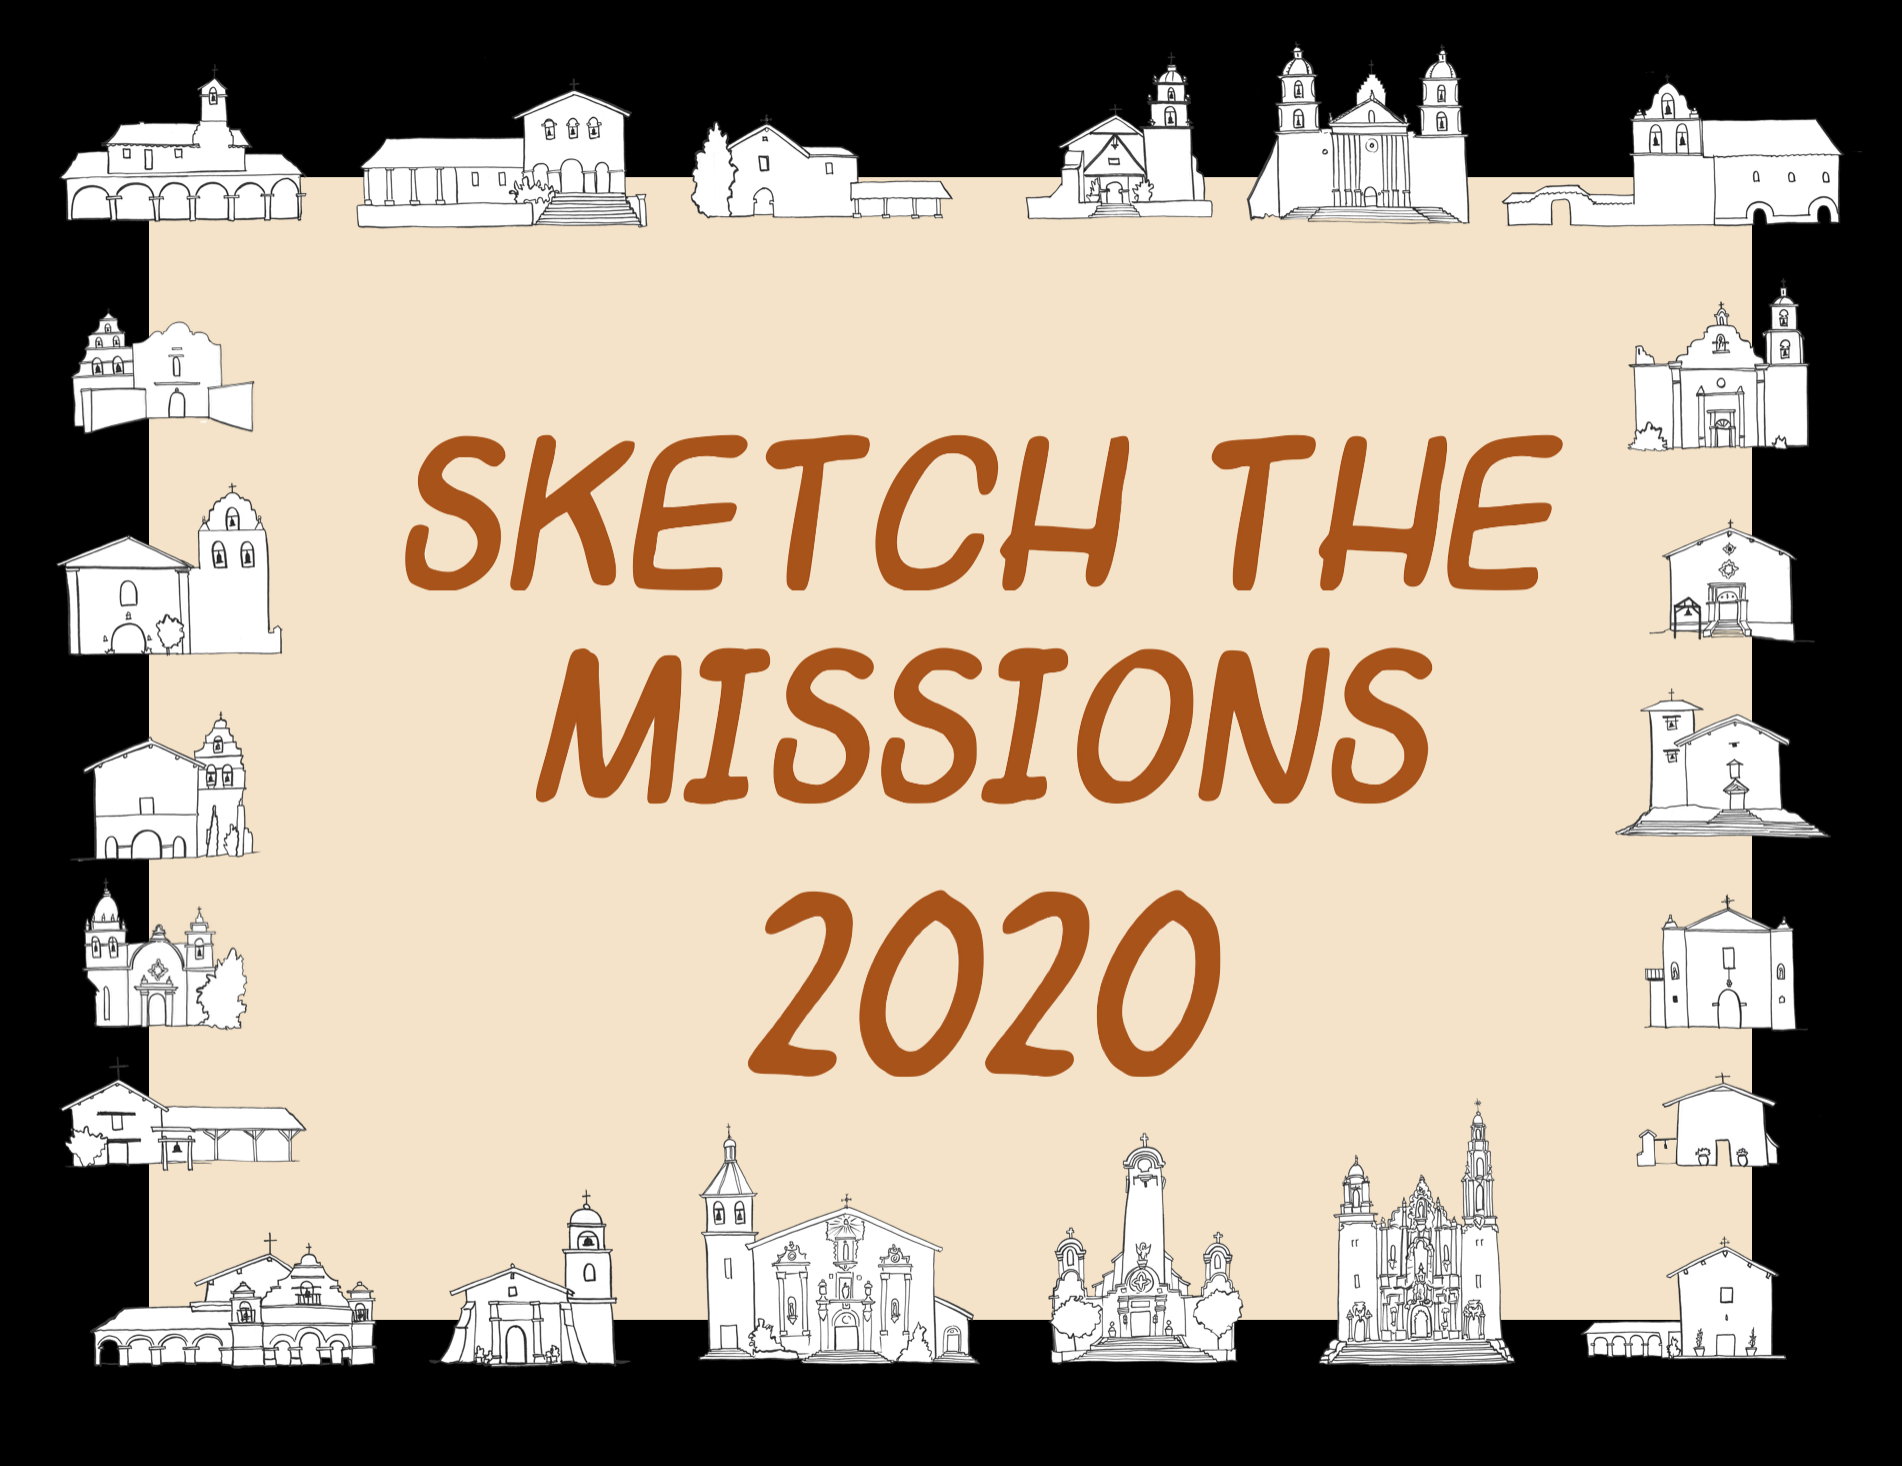 Sketch the Missions logo